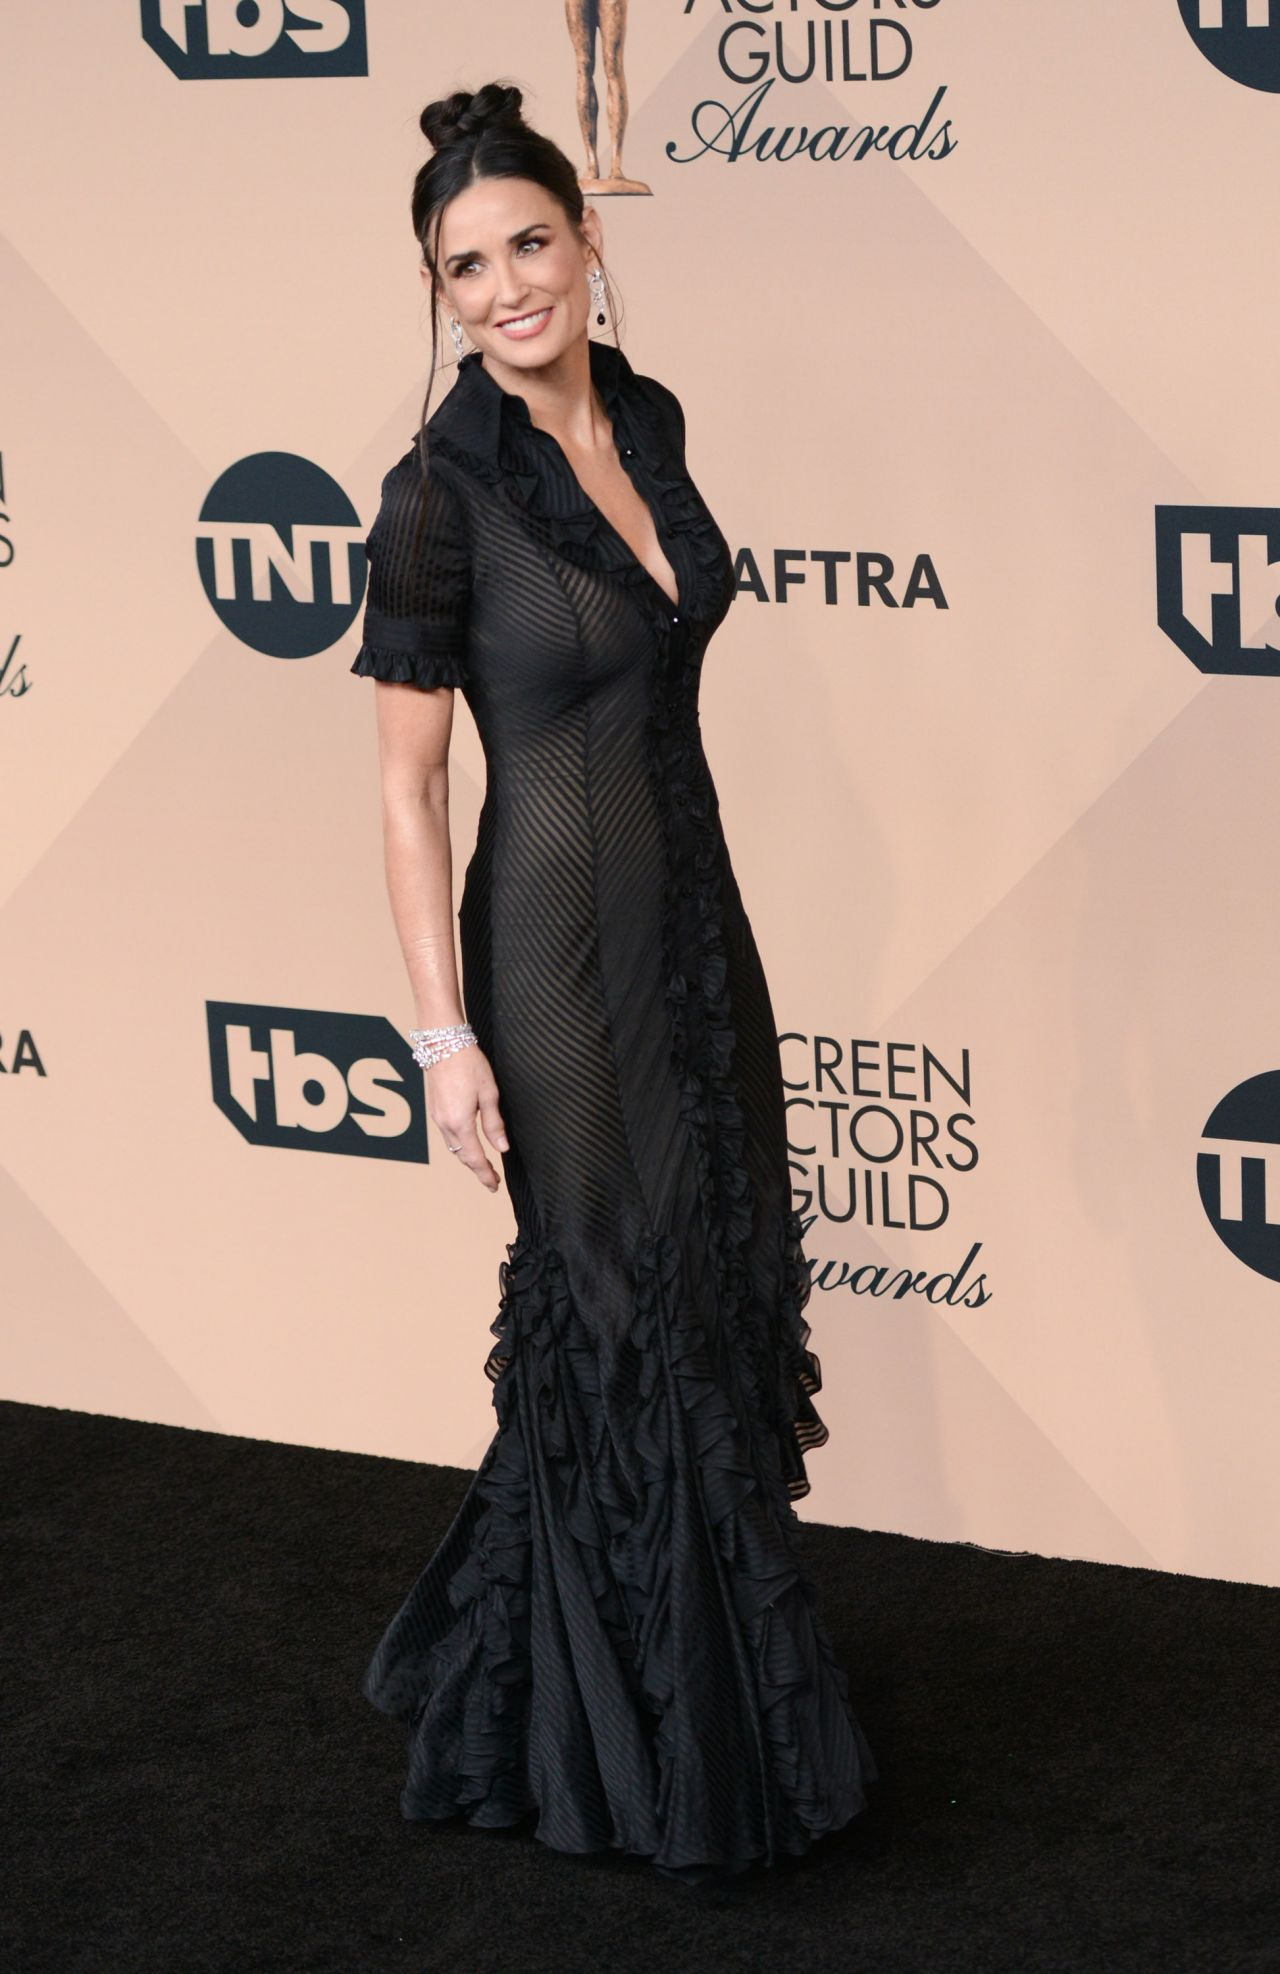 http://celebmafia.com/wp-content/uploads/2016/02/demi-moore-sag-awards-2016-at-shrine-auditorium-in-los-angeles-12.jpg